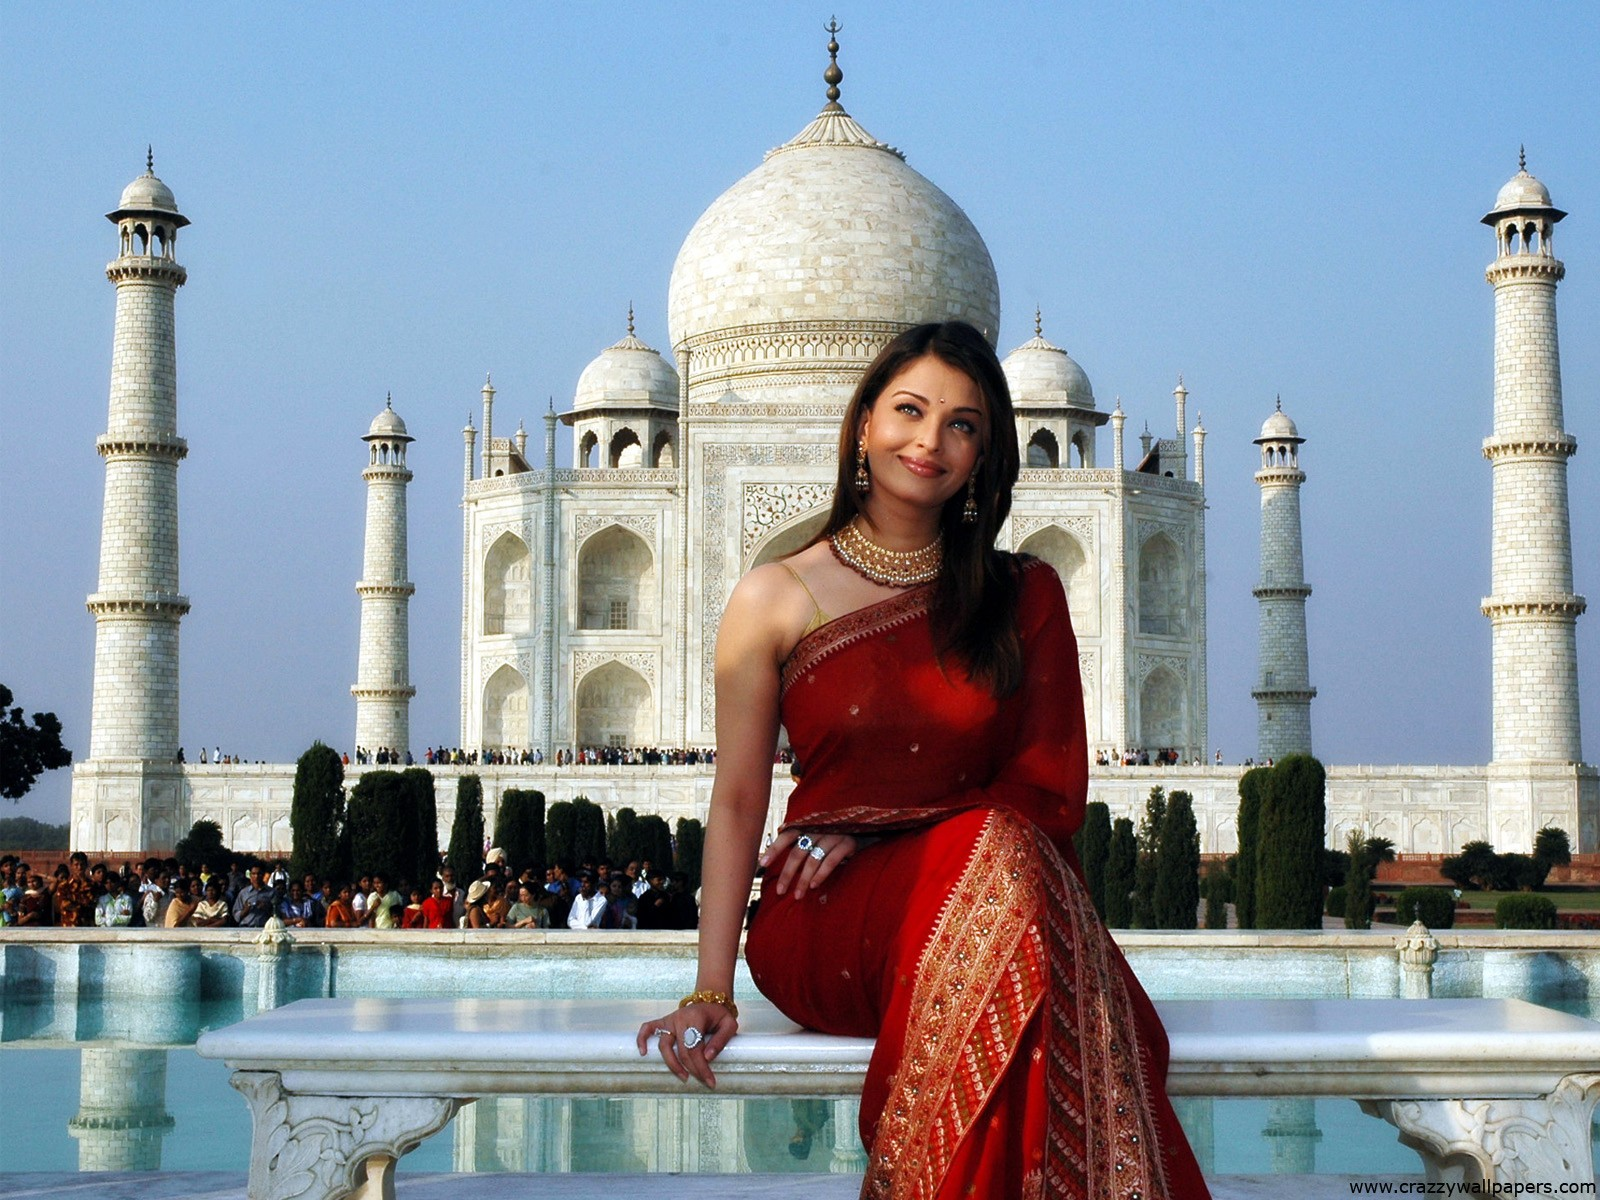 Beautiful Aishwarya Rai and Taj Mahal 375.76 Kb